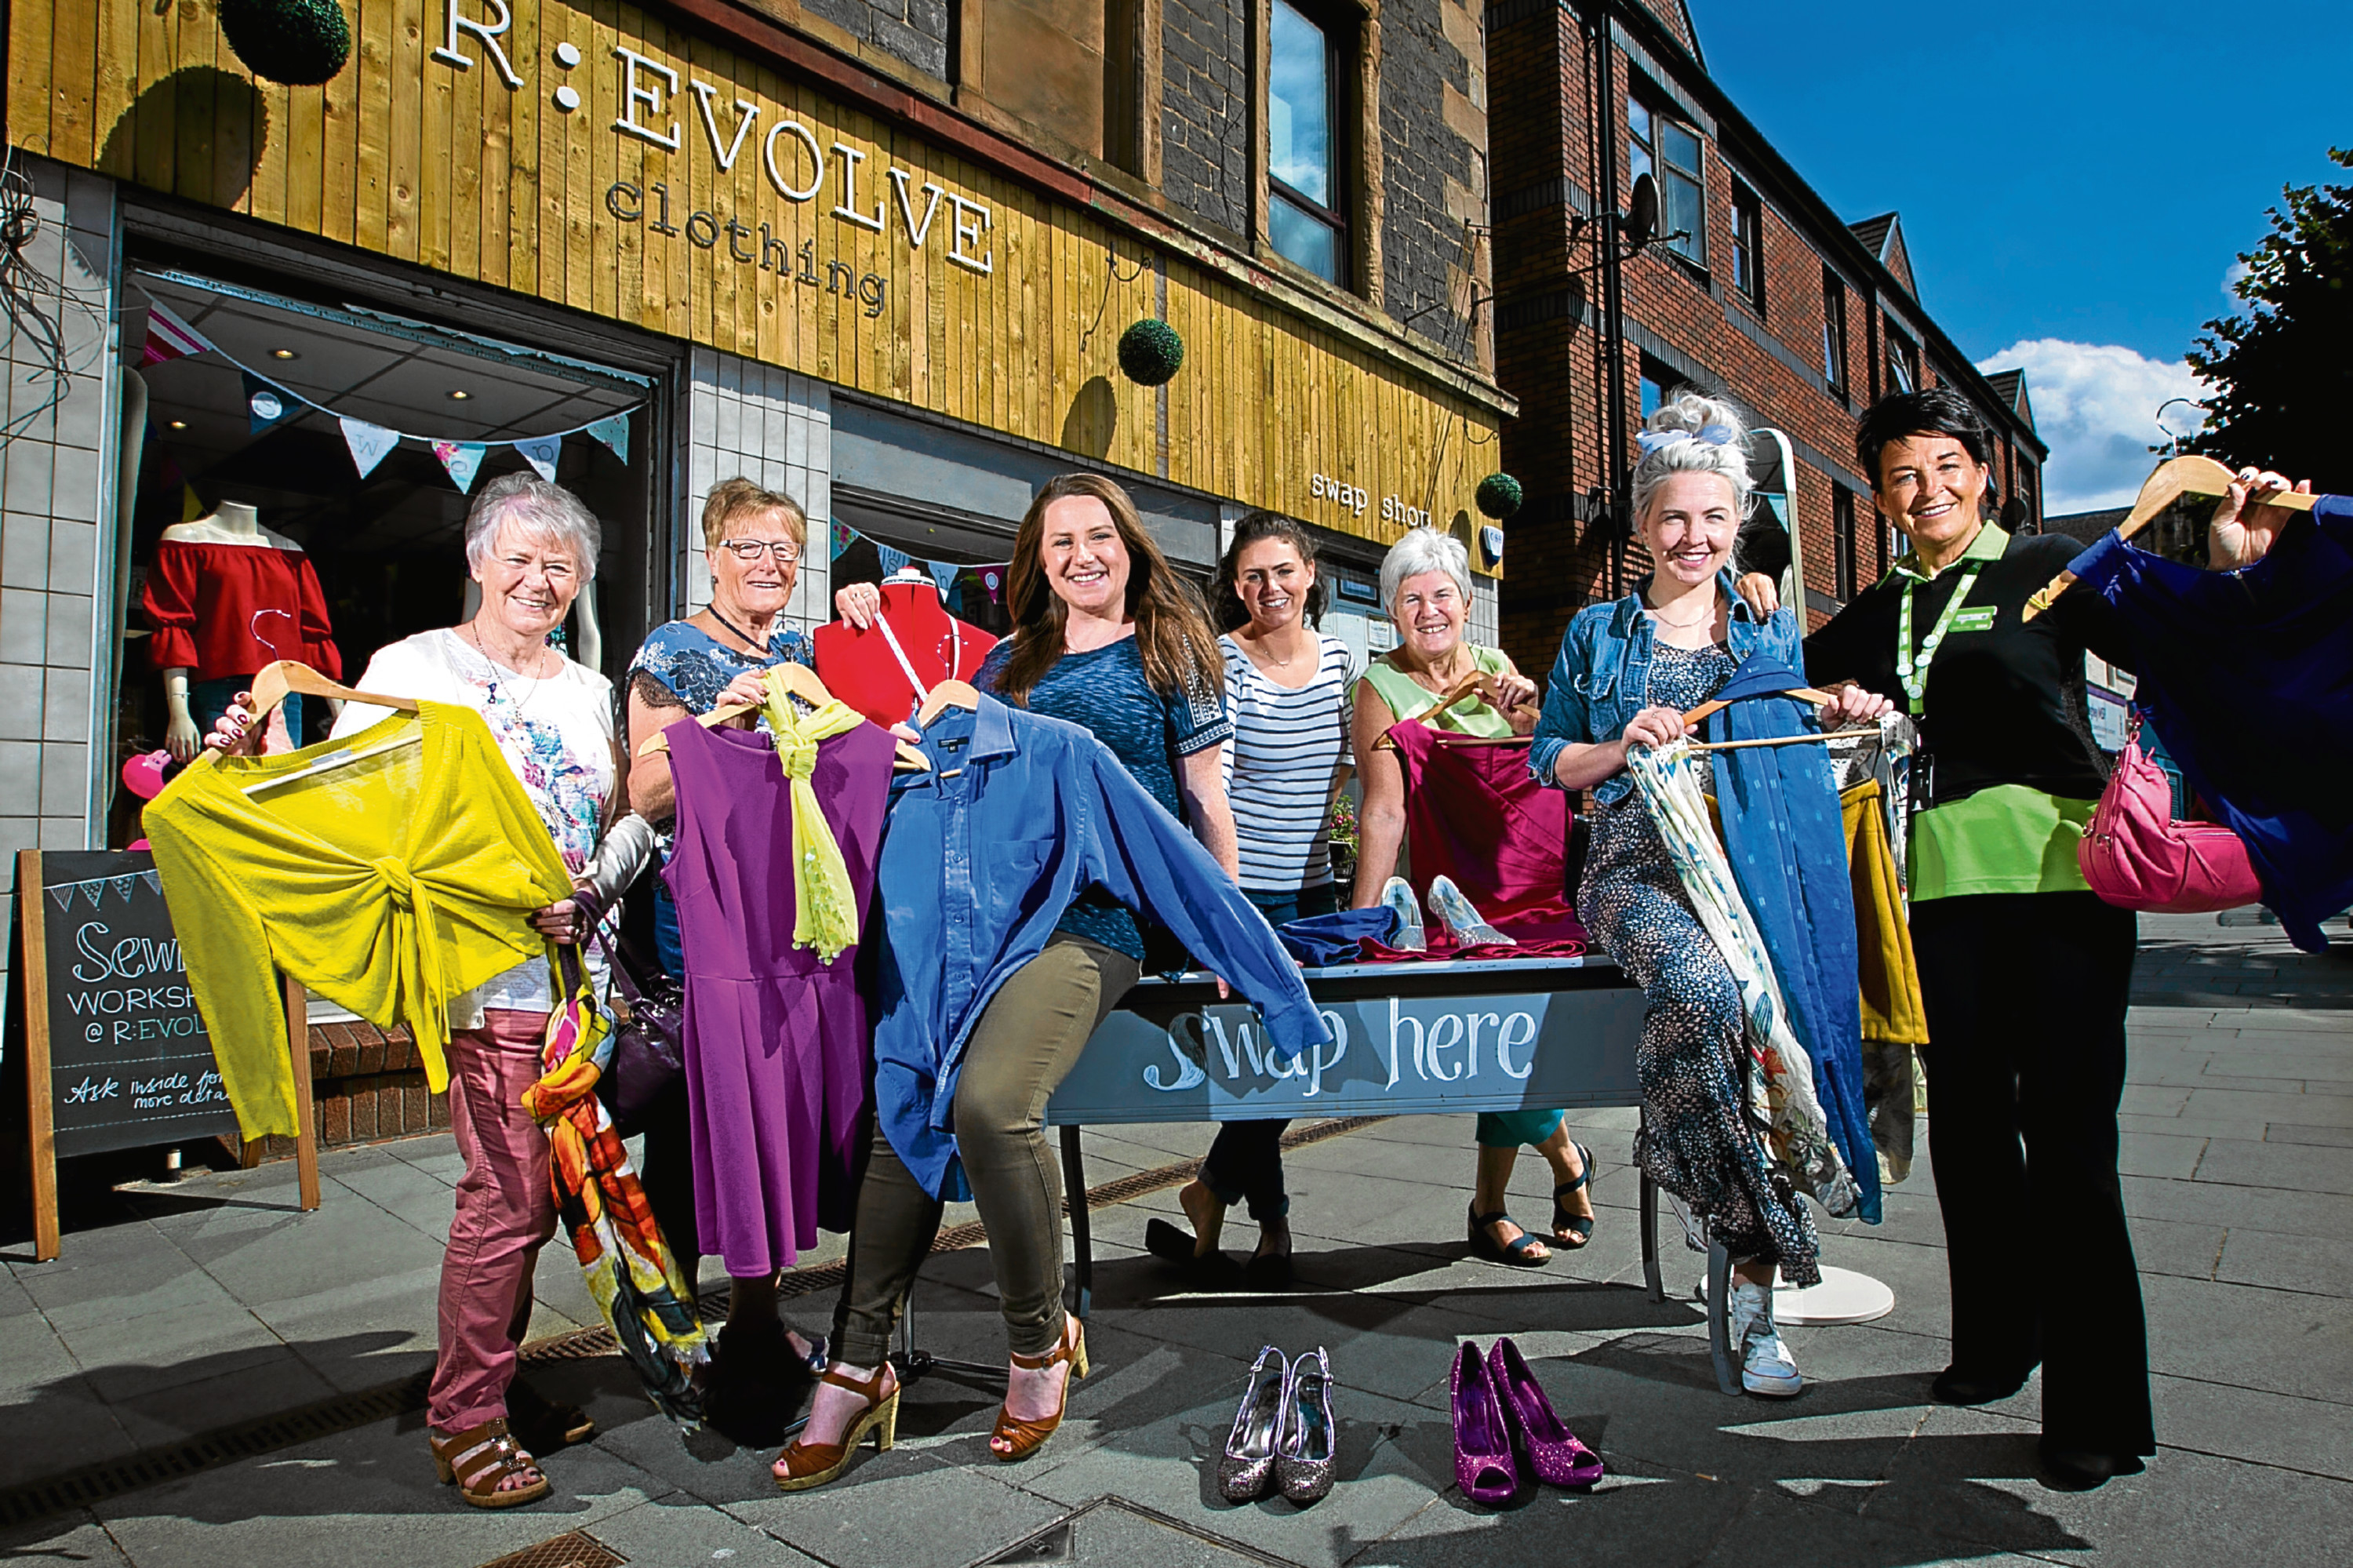 Staff and volunteers at R:Evolve, Rutherglen (Andrew Cawley / DC Thomson)